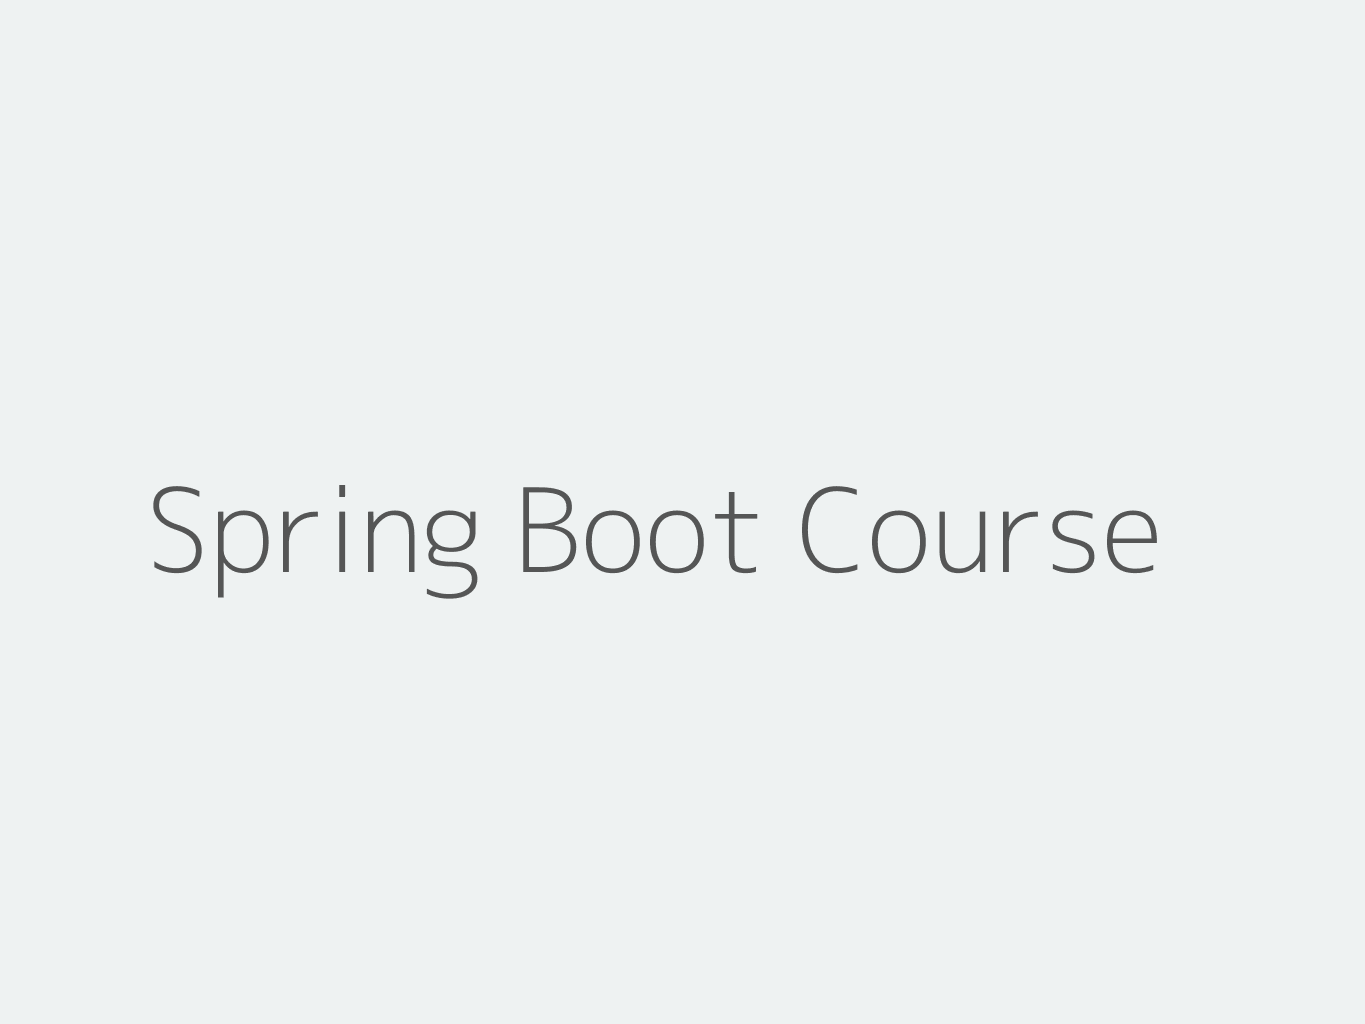 Spring Boot Course In Practice with Hands-On Experience Tutorials